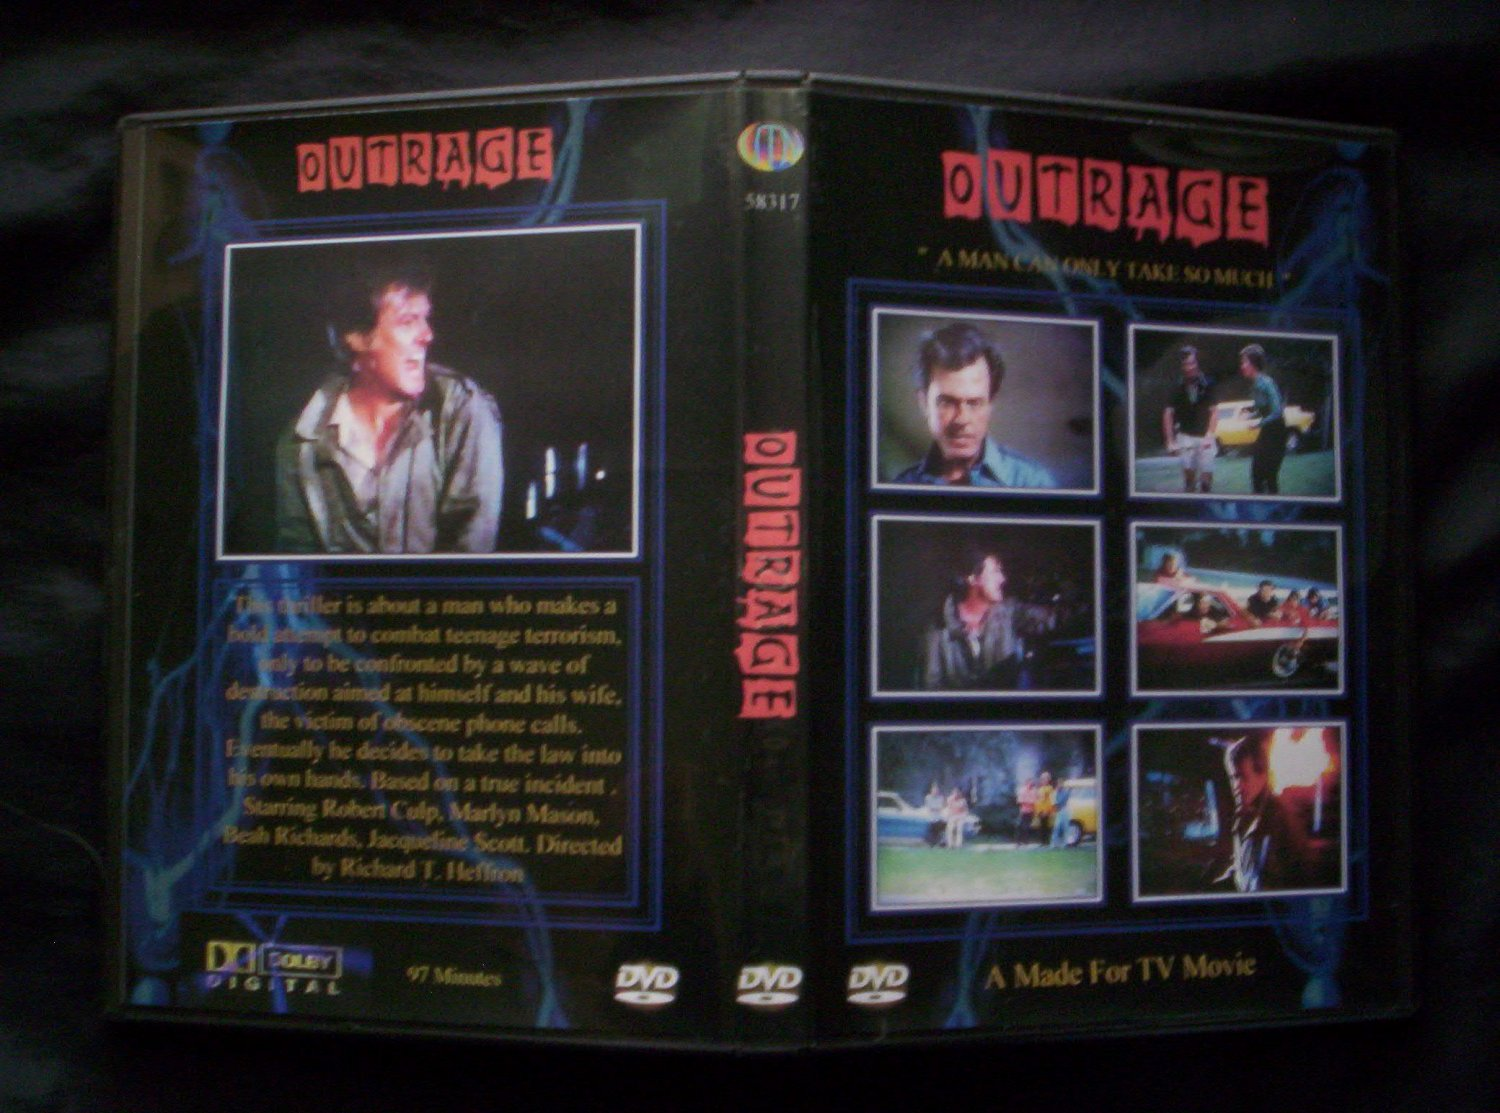 OUTRAGE DVD, 1973 Made for TV Movie, Robert Culp